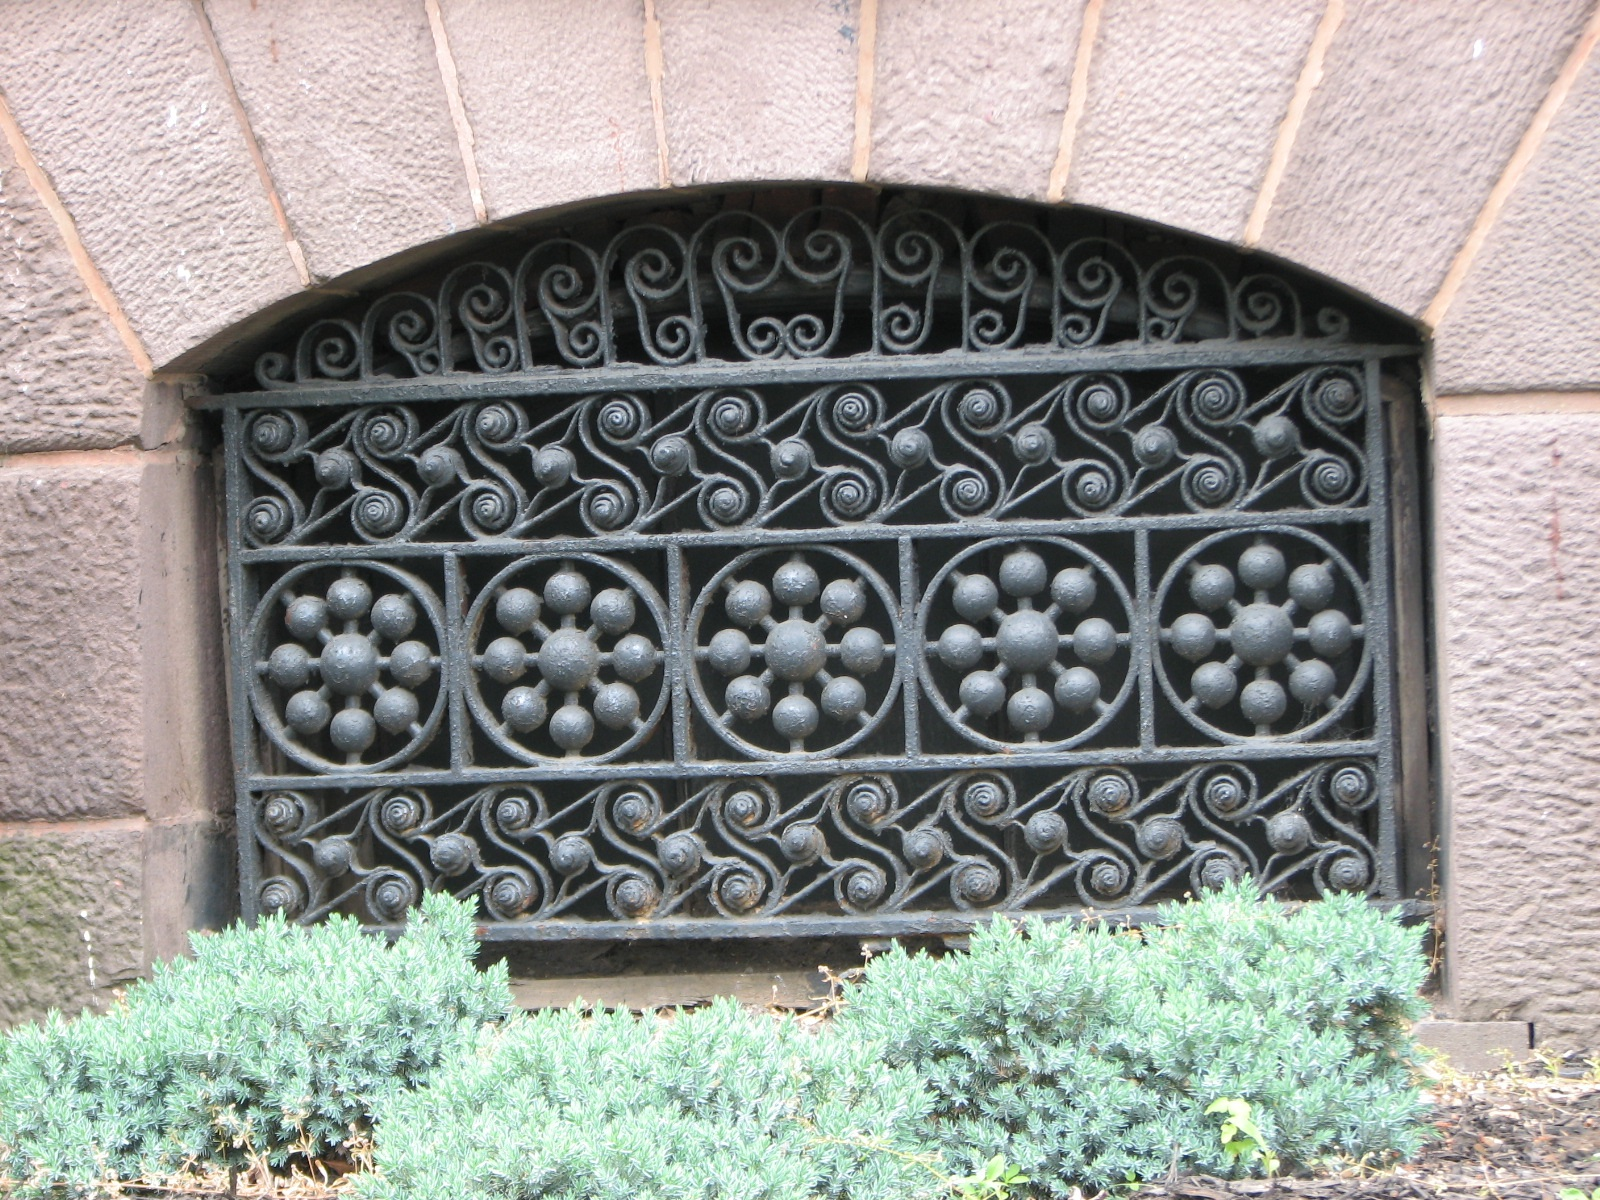 Original ironwork and other details adorn the well-maintained exterior of the house.